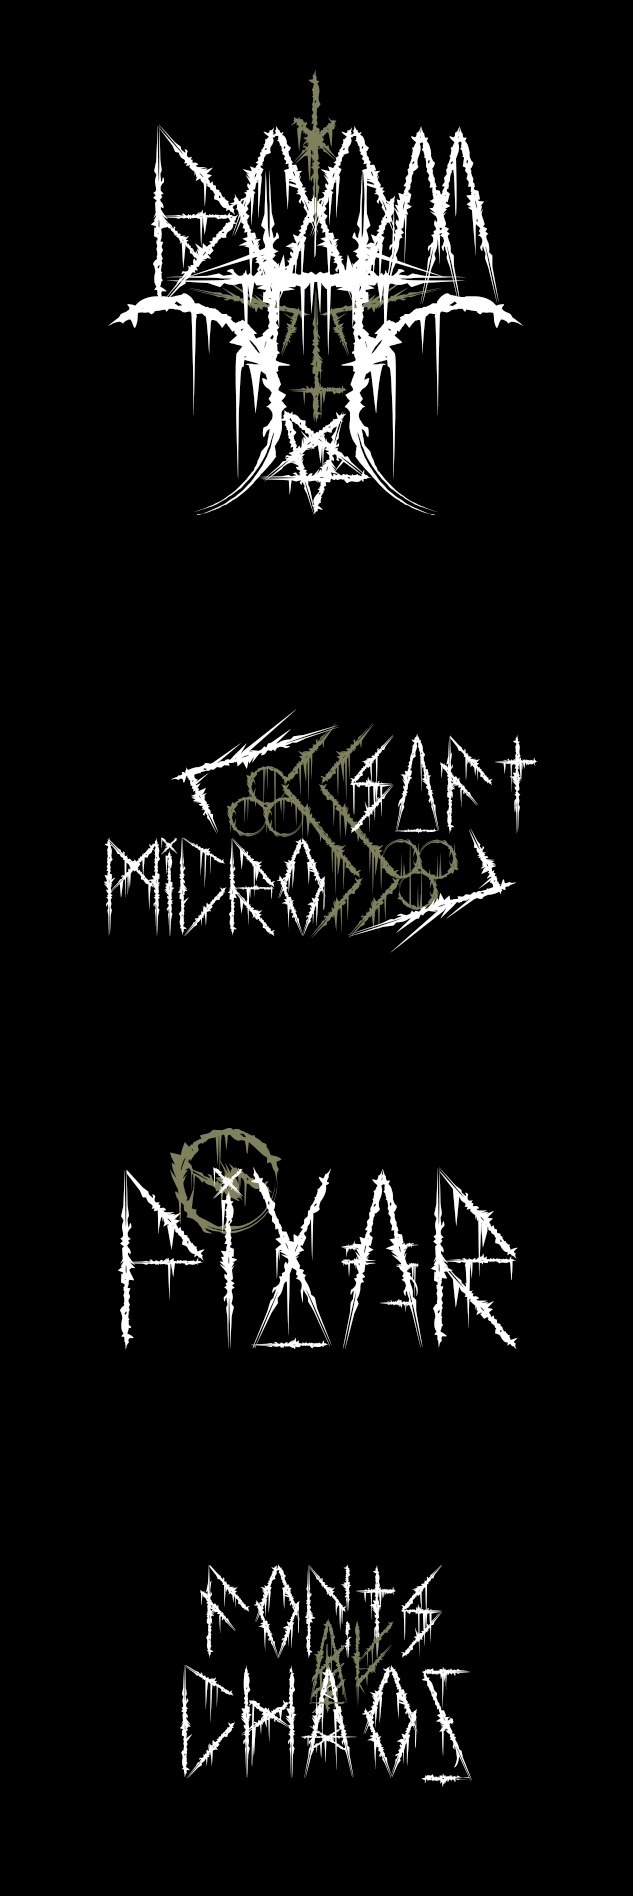 Atuvuta - Fonts of Chaos. #fonts #font #types #typographism #blackmetal #type #typo #typography